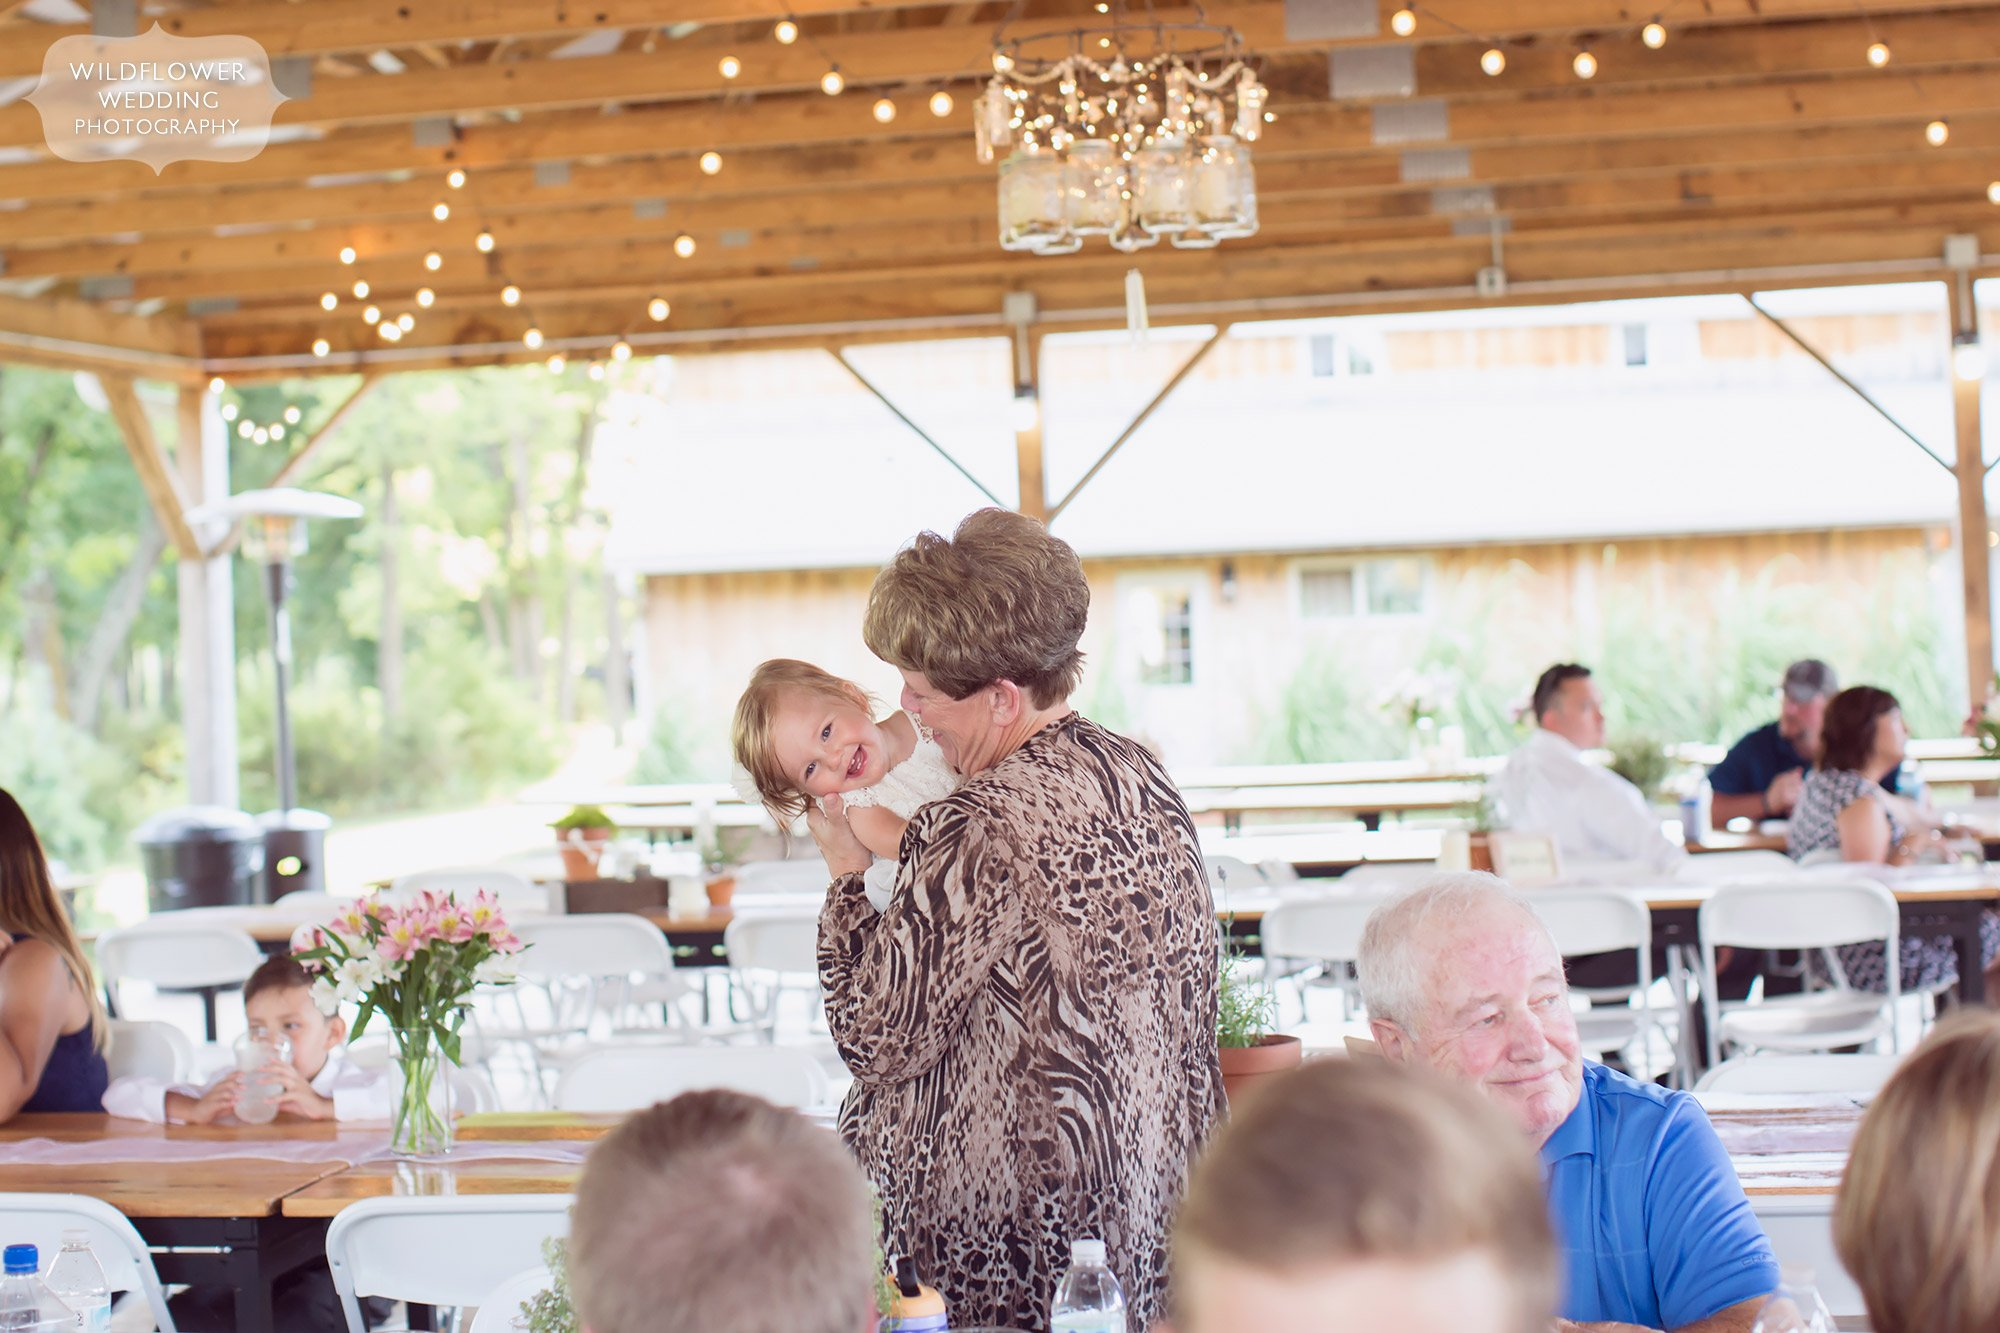 Great documentary wedding photo of the grandmother smiling with her granddaughter after dinner in the covered pavilion at this country wedding venue.